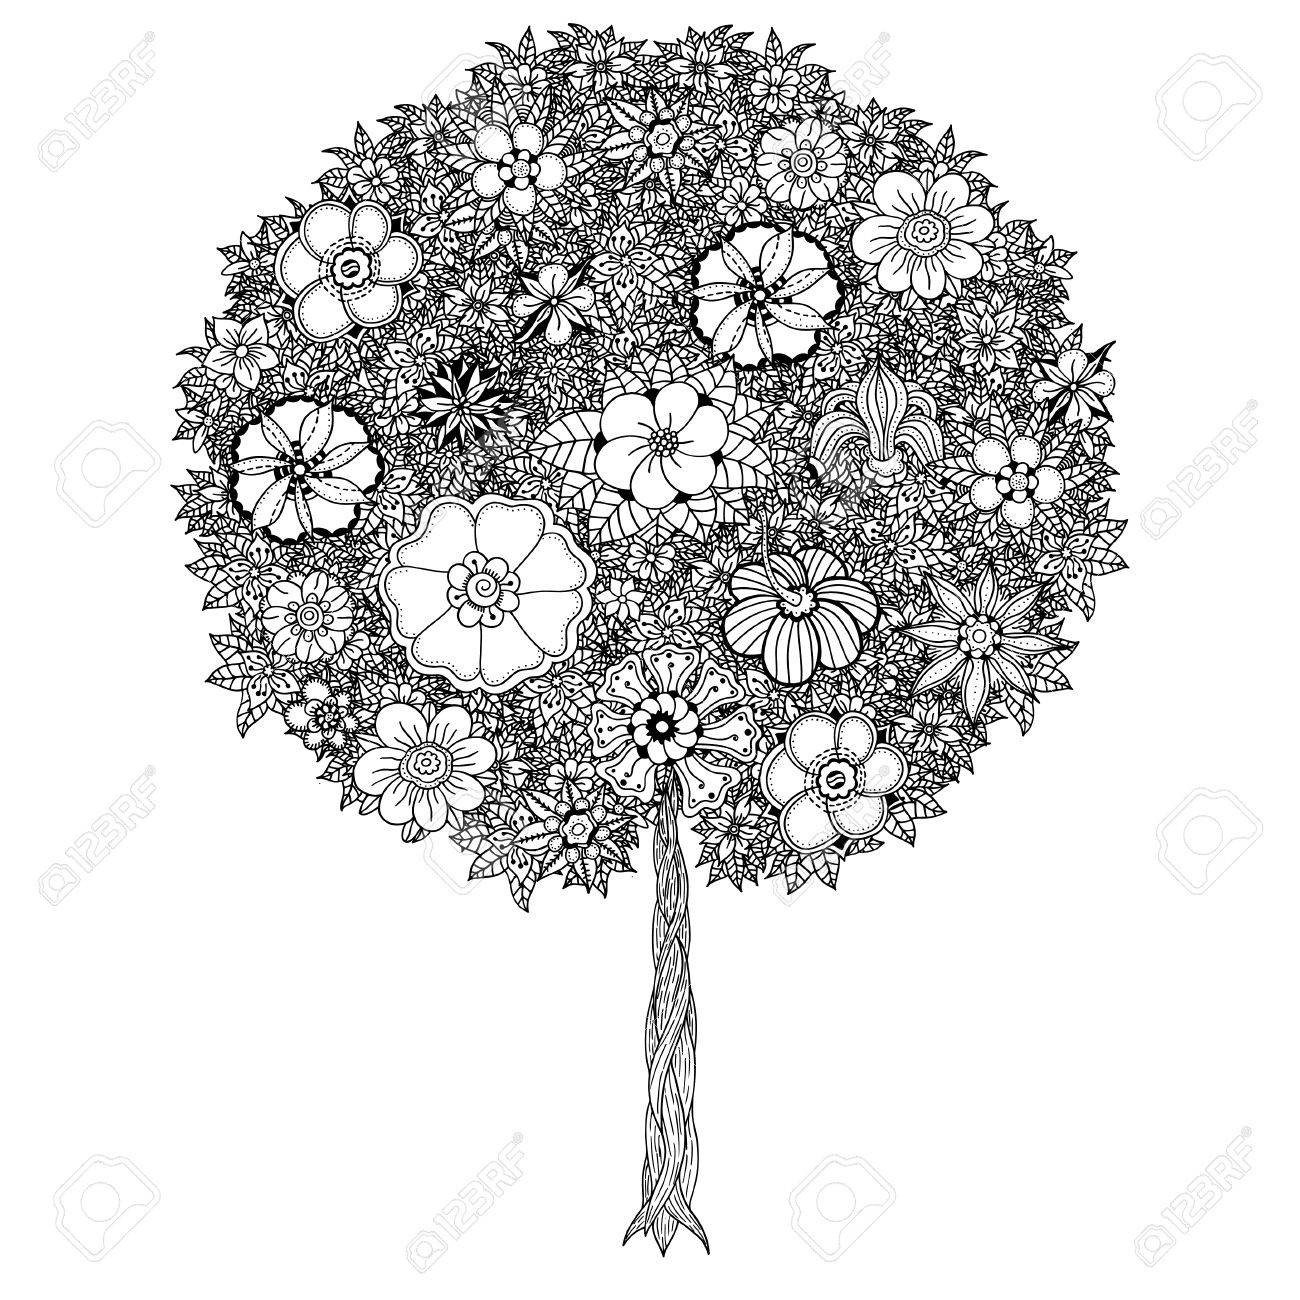 Black And White Tree With Leaves Flowers Vector Coloring Book Page For Adults Hand Drawn